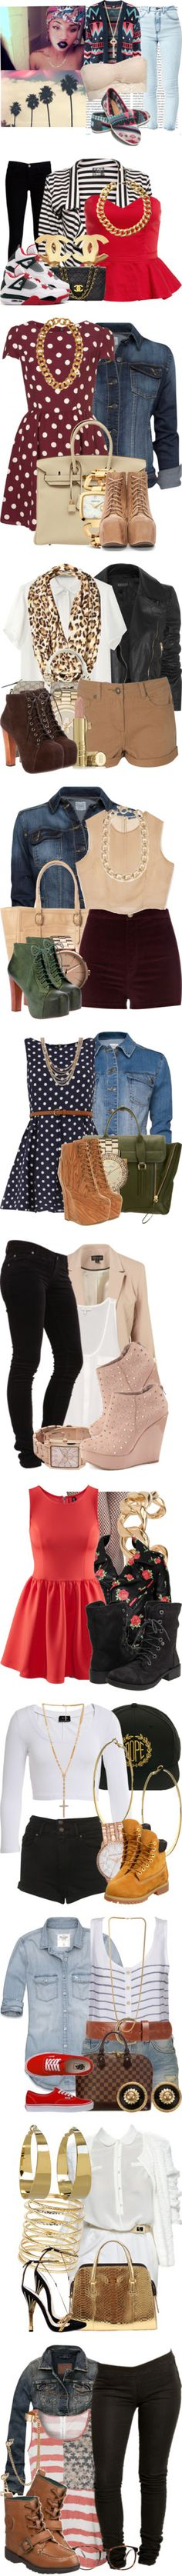 """What I Would Wear"" by jasminesanders-anon ❤ liked on Polyvore"